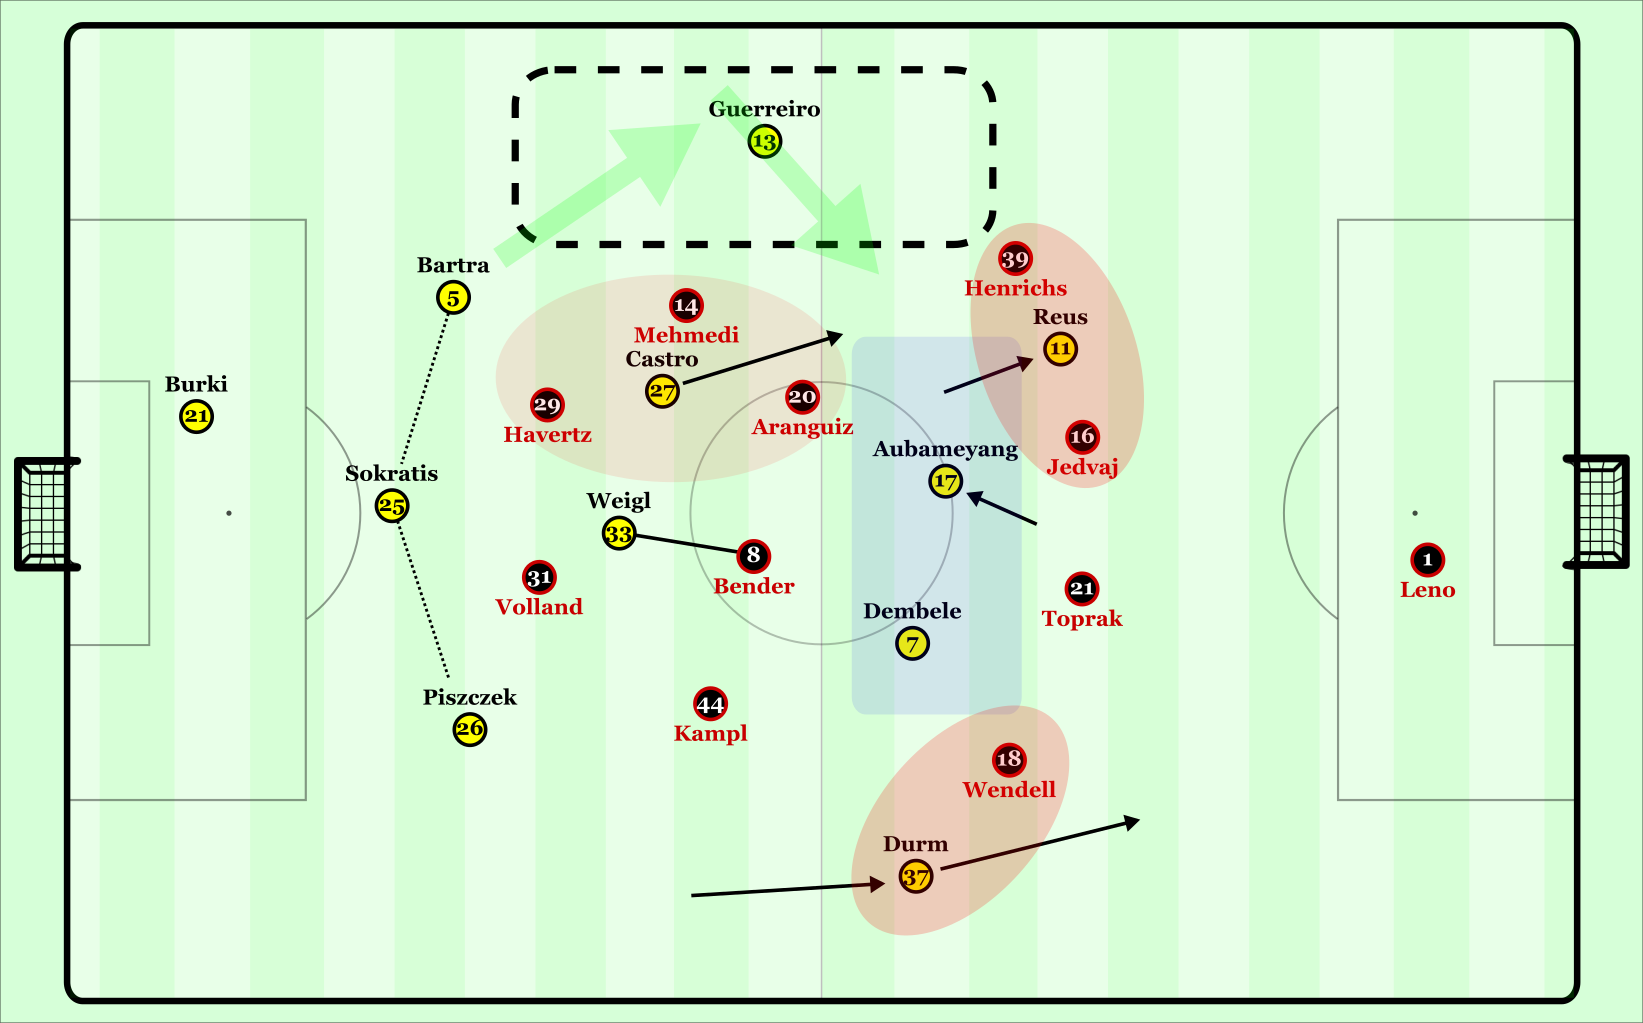 Dortmund occupied Bayer's defensive line well, which aided the possession in deeper areas.